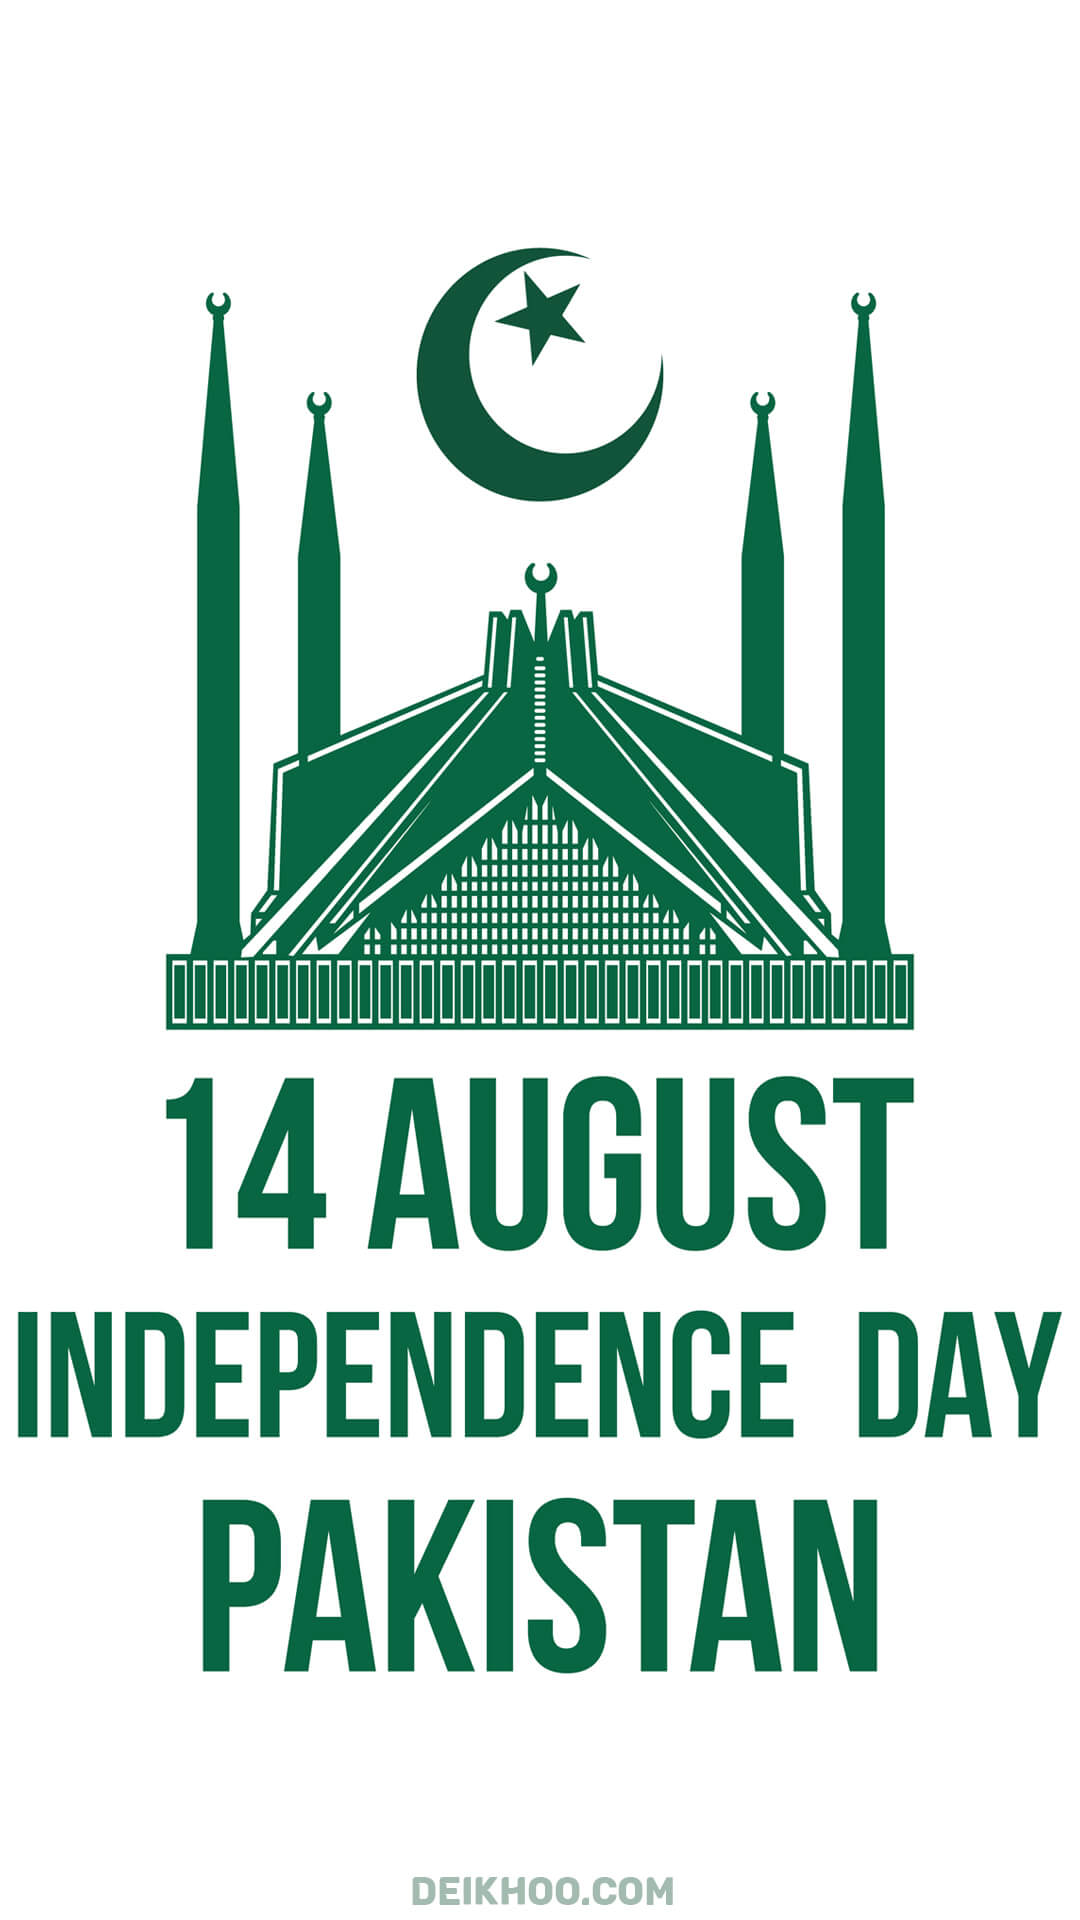 Pakistan Independence day 2018 Wallpapers - Deikhoo com